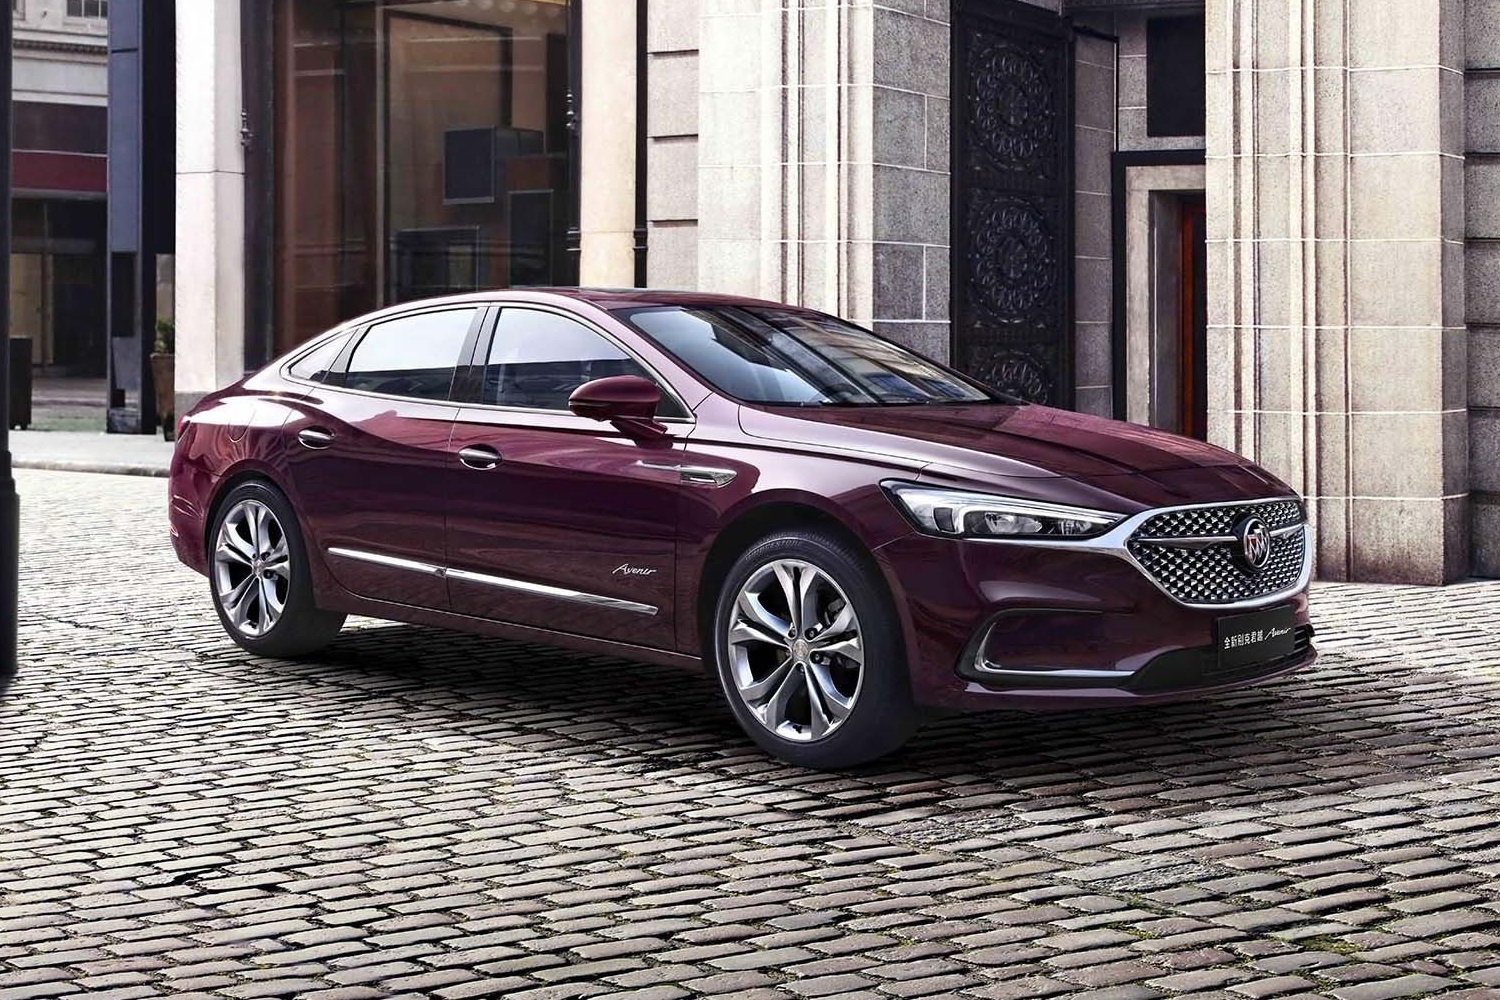 2020 Buick Lacrosse: Hot Or Not? | Gm Authority 2022 Buick Lucerne Dimensions, Hp, Interior